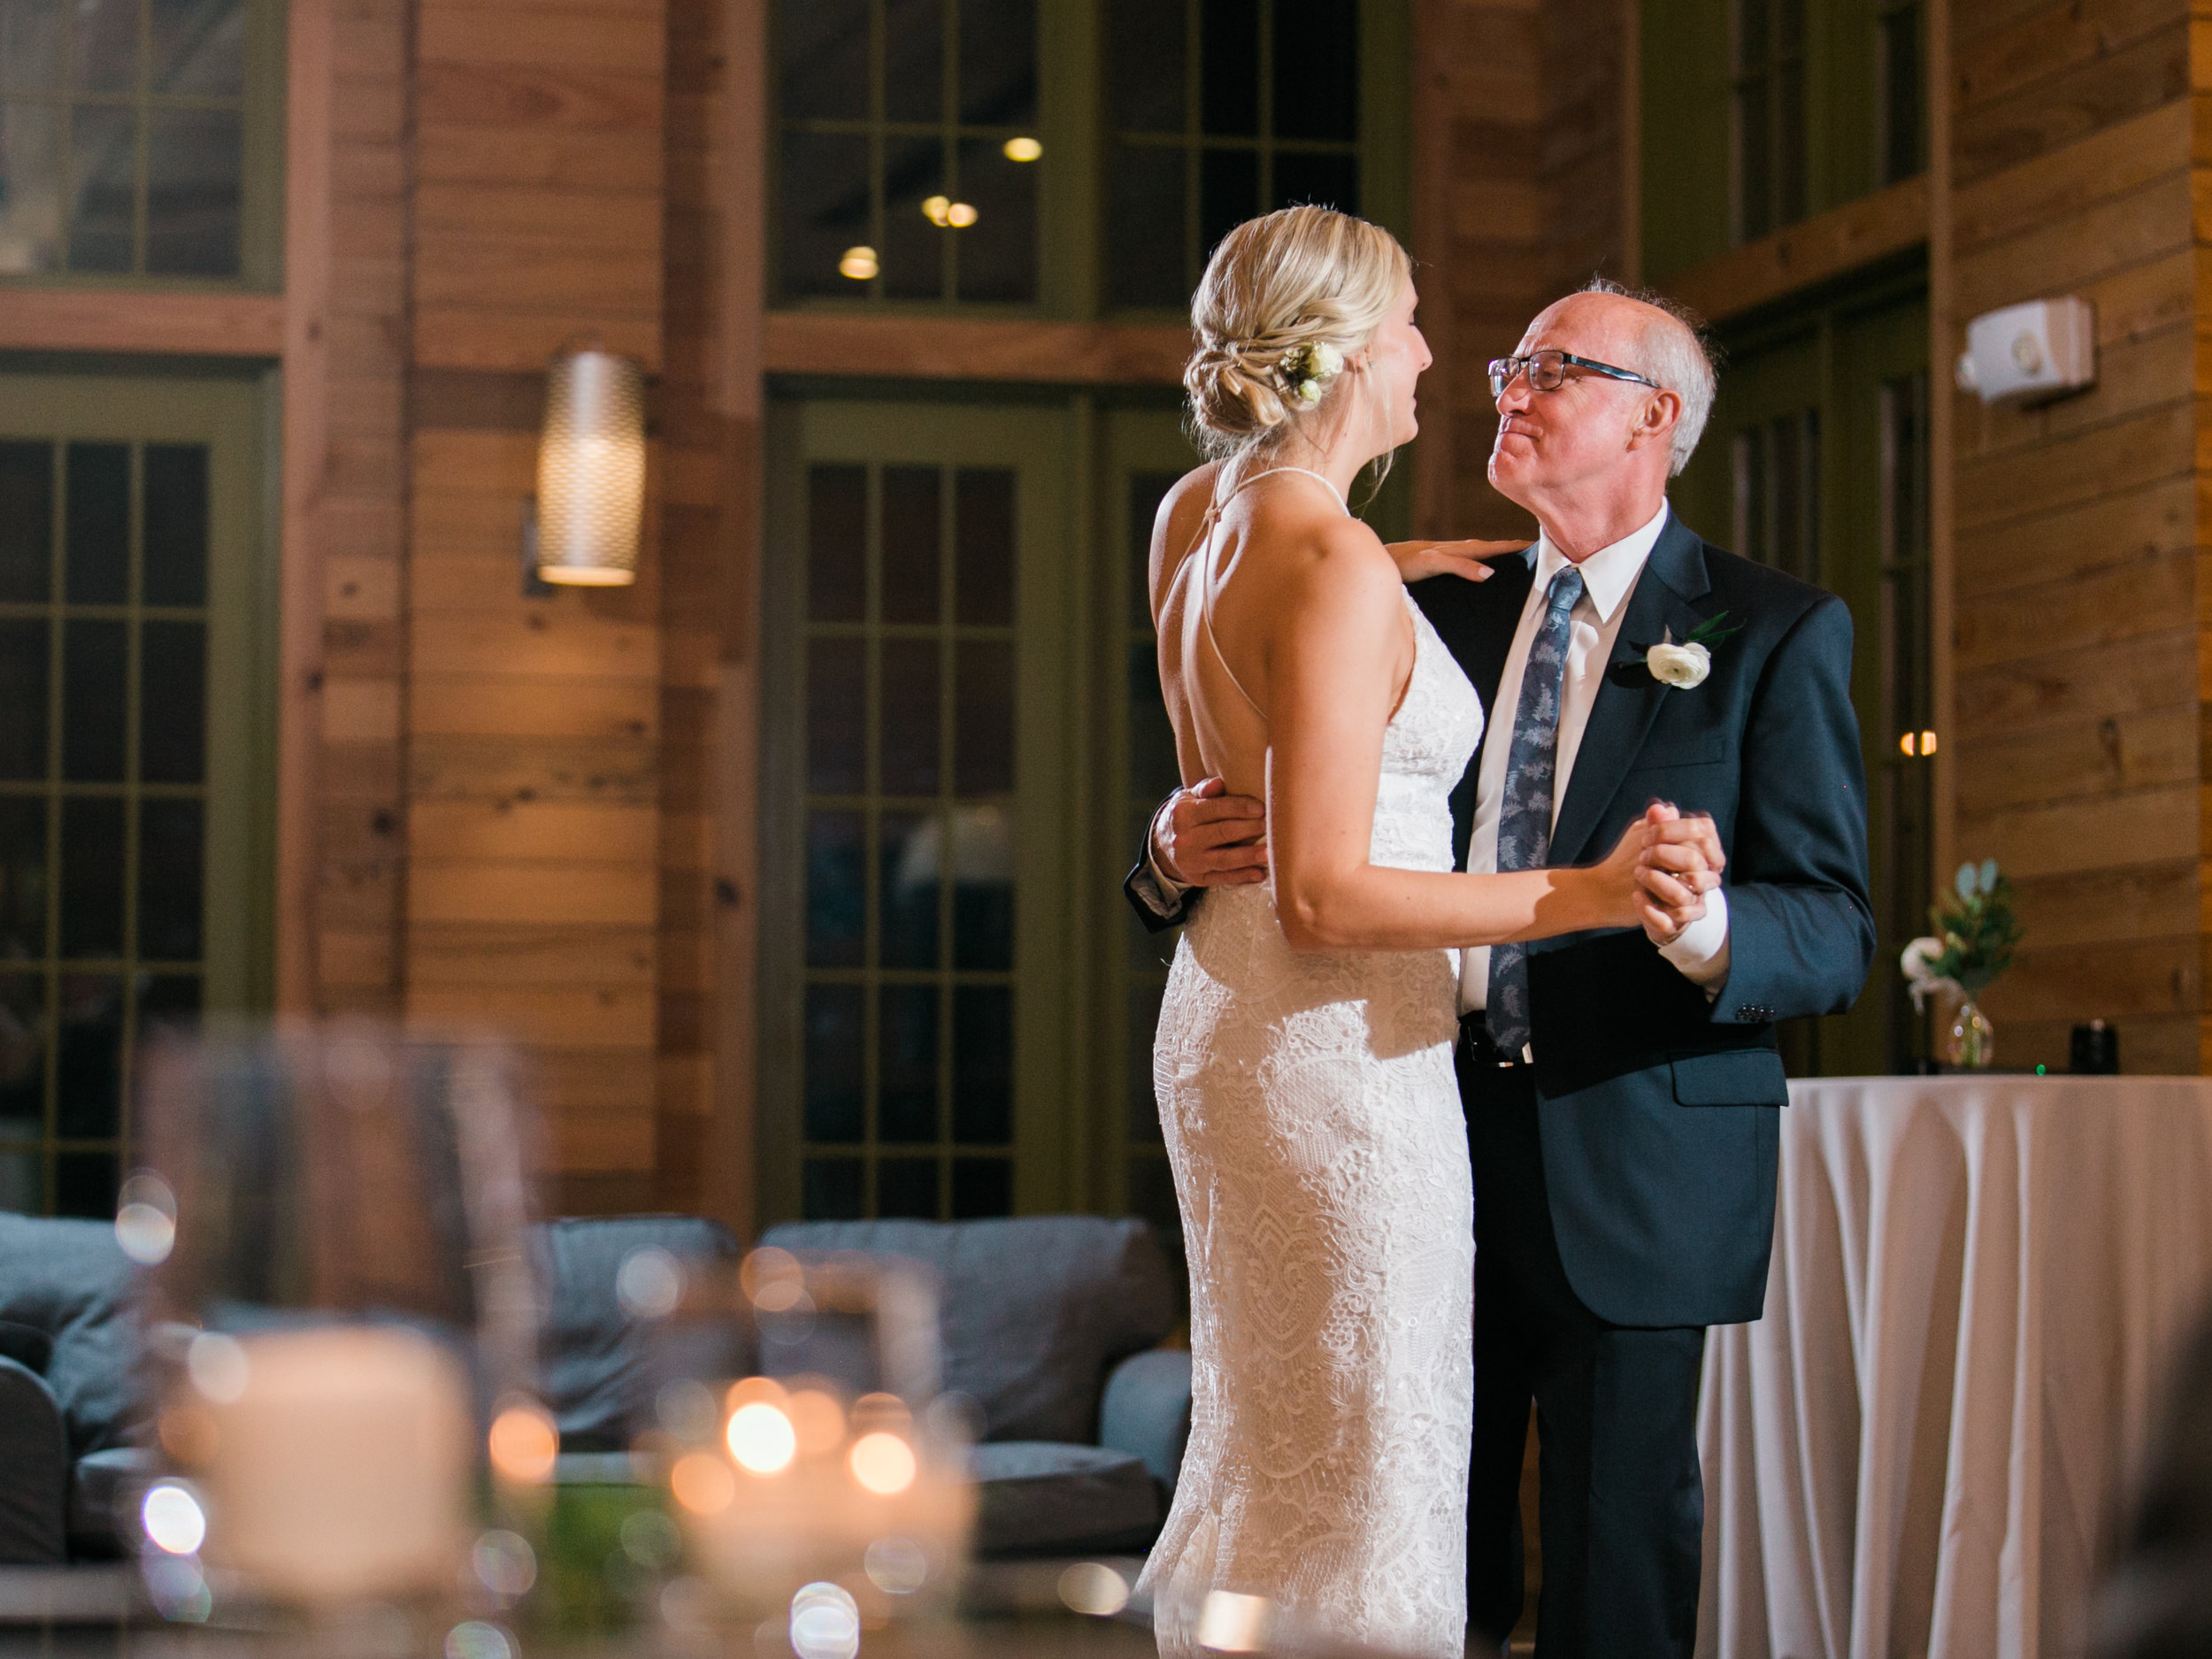 My Dad and I danced to 'How Sweet It Is' by James Taylor.